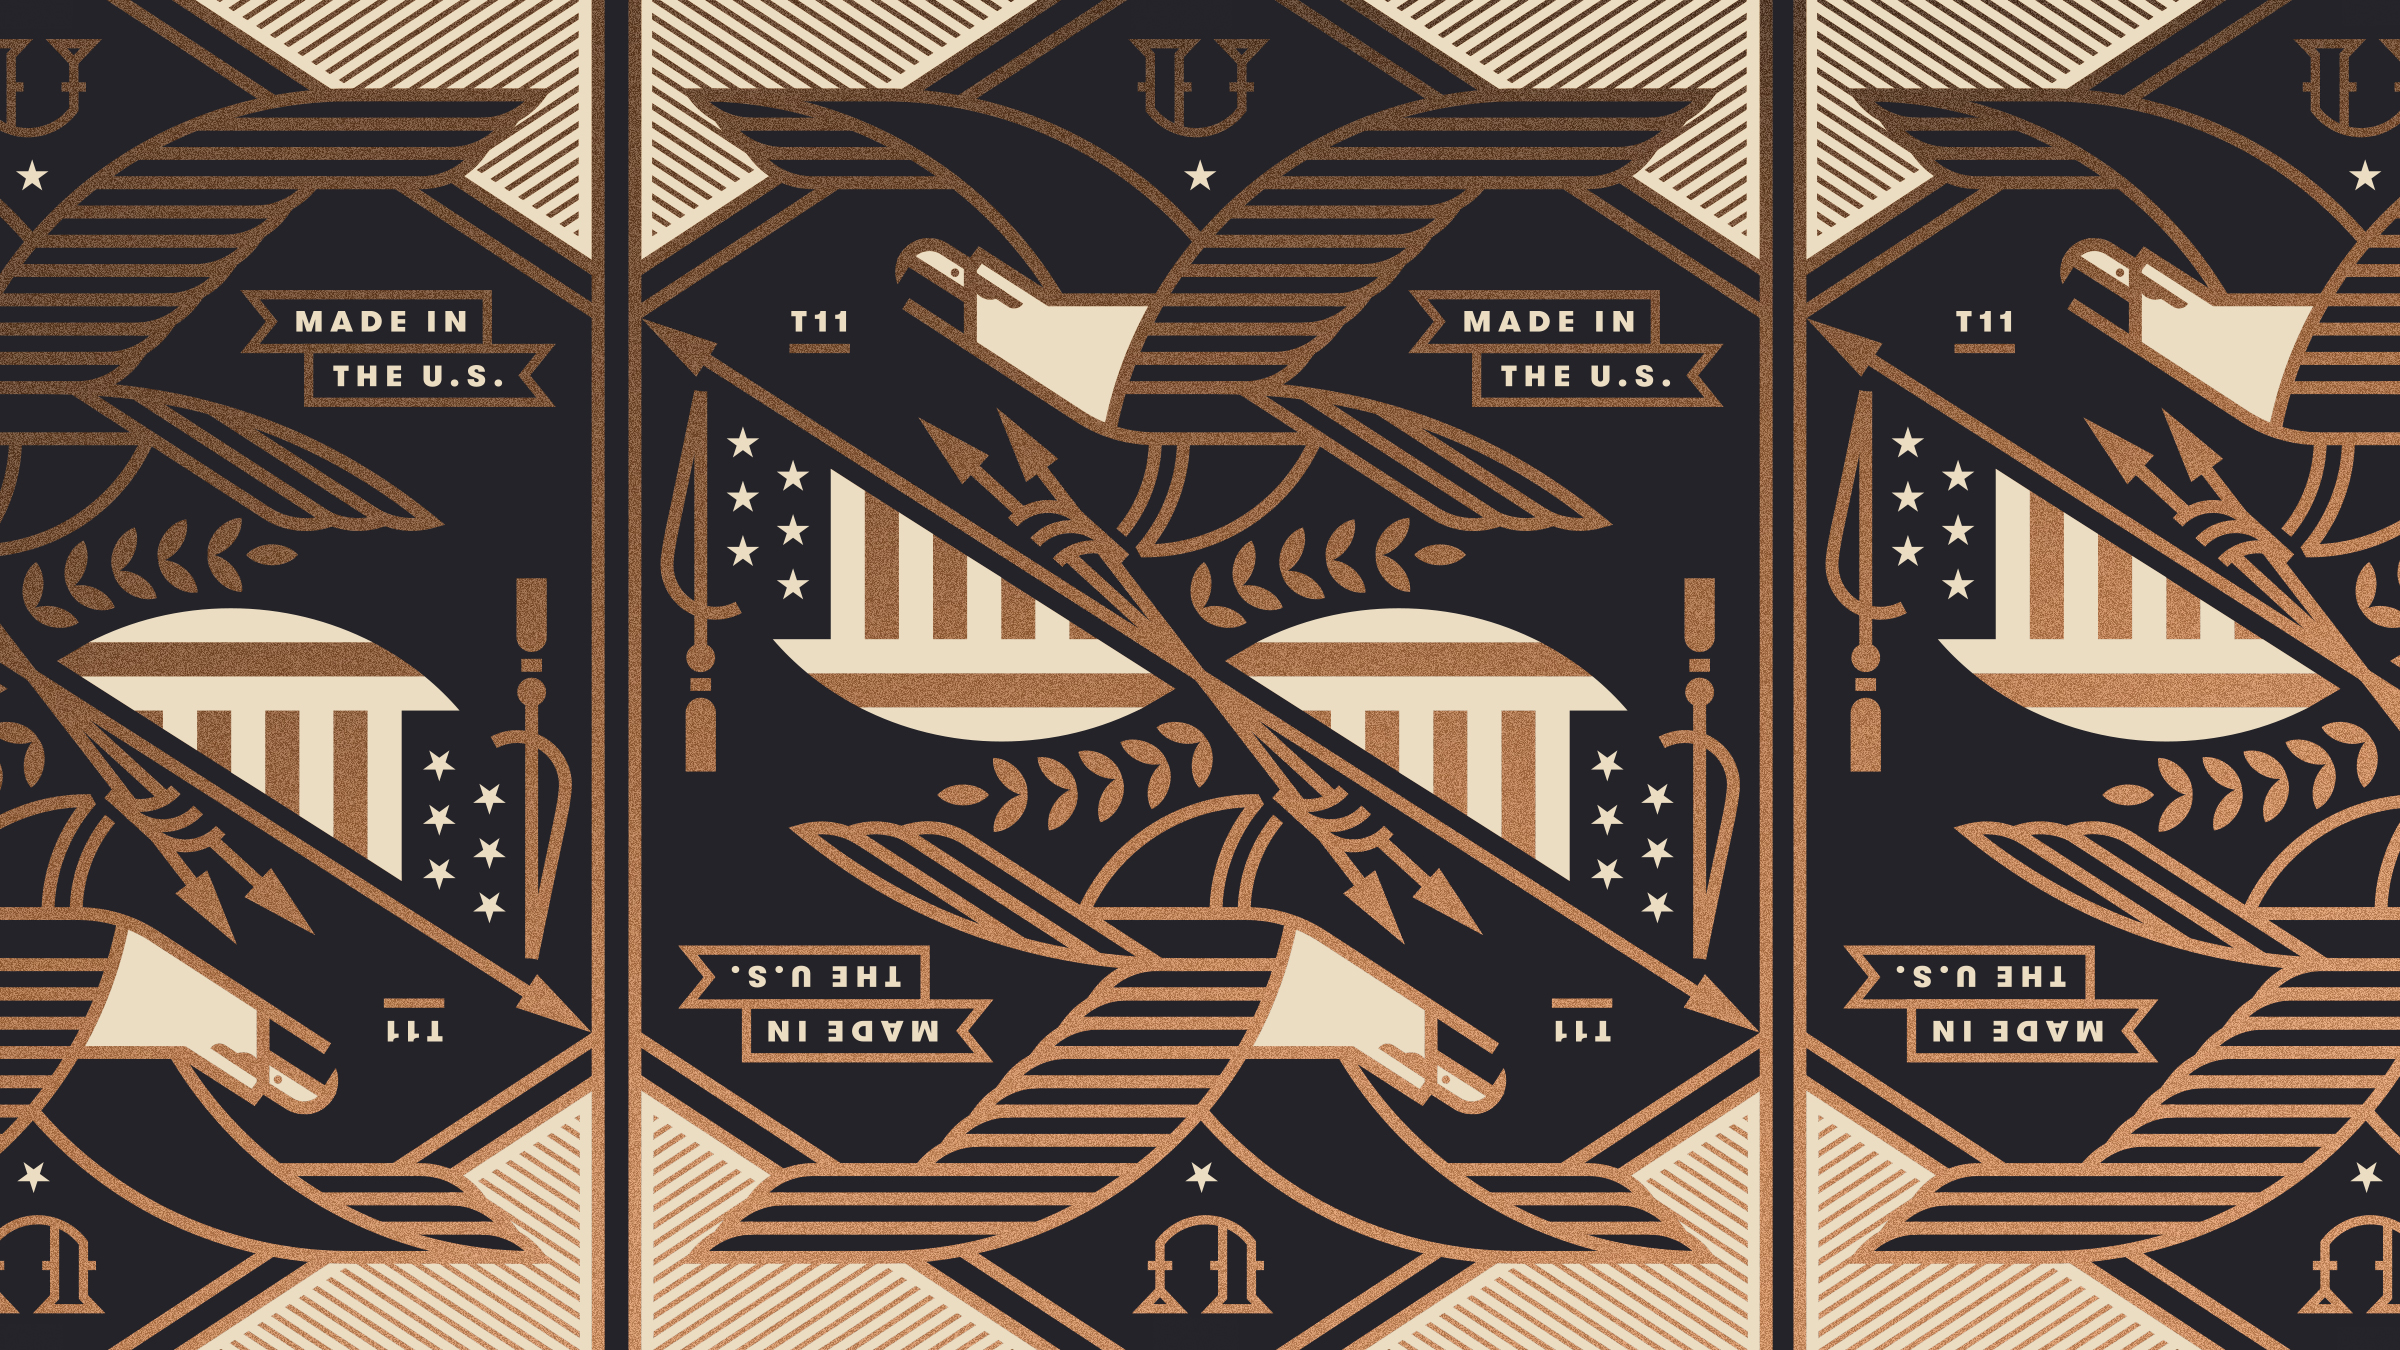 Union Playing Cards, Design  illustration \u2014 Jay Fletcher